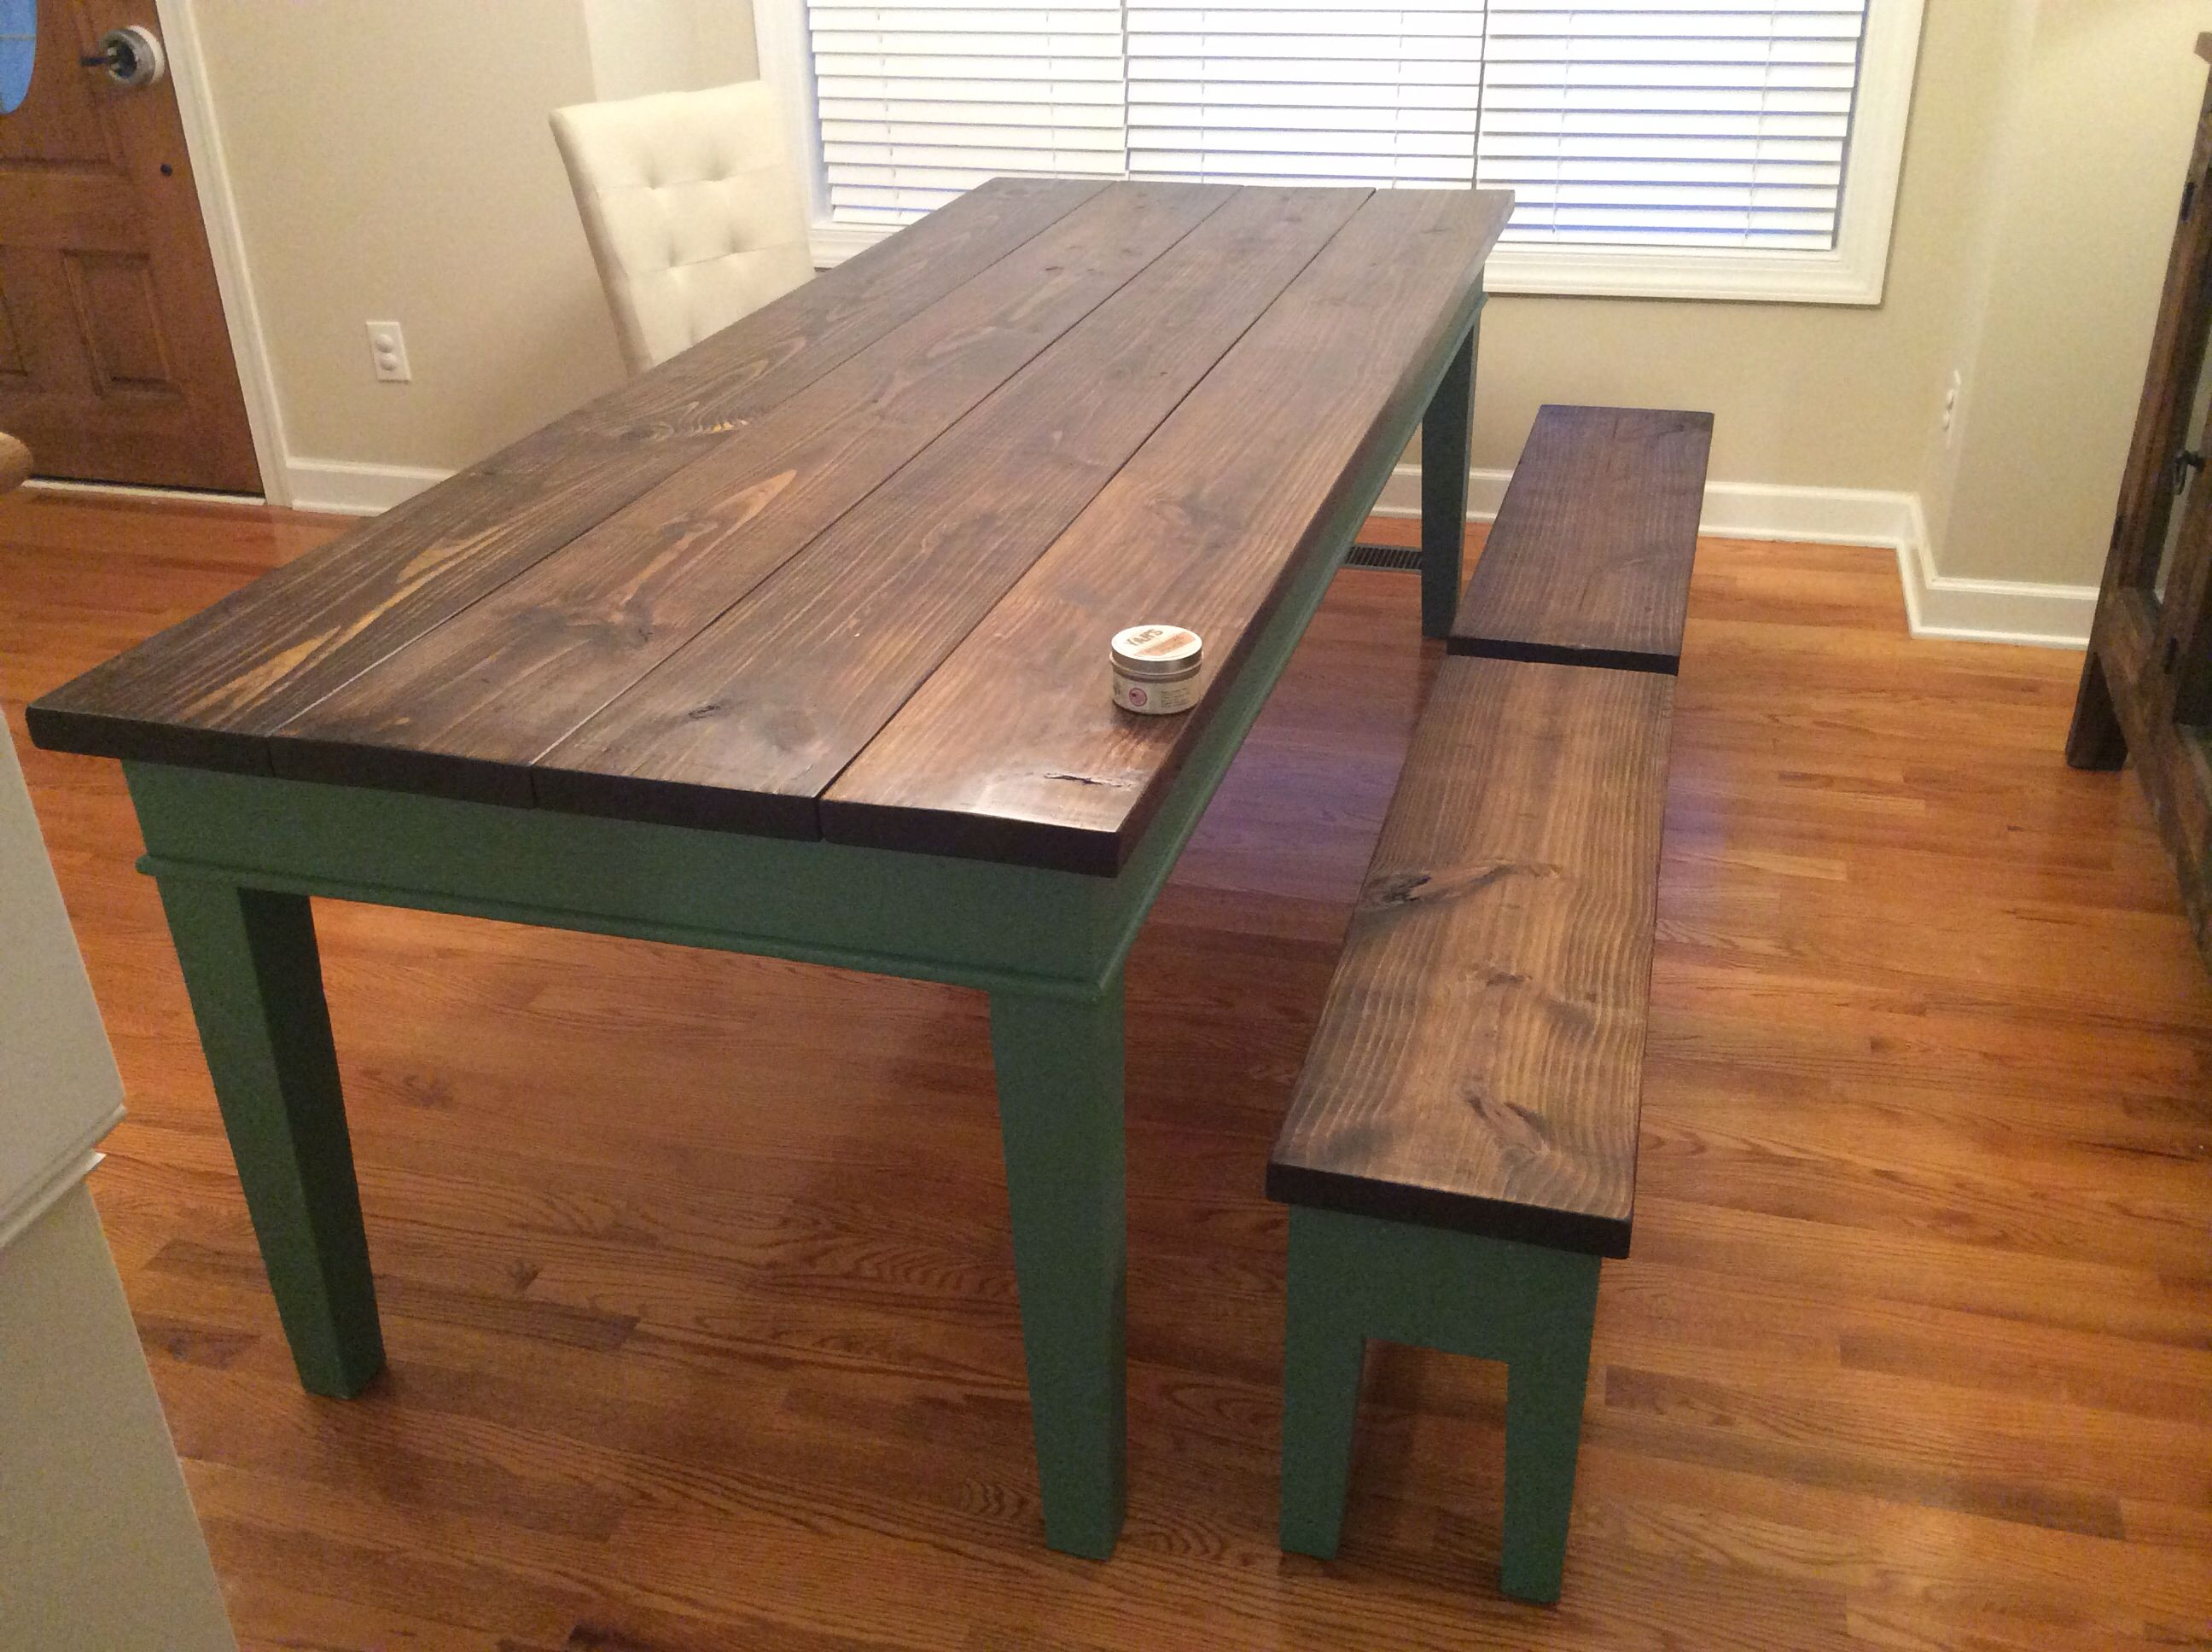 Finished farm table. Pine top distressed and burned